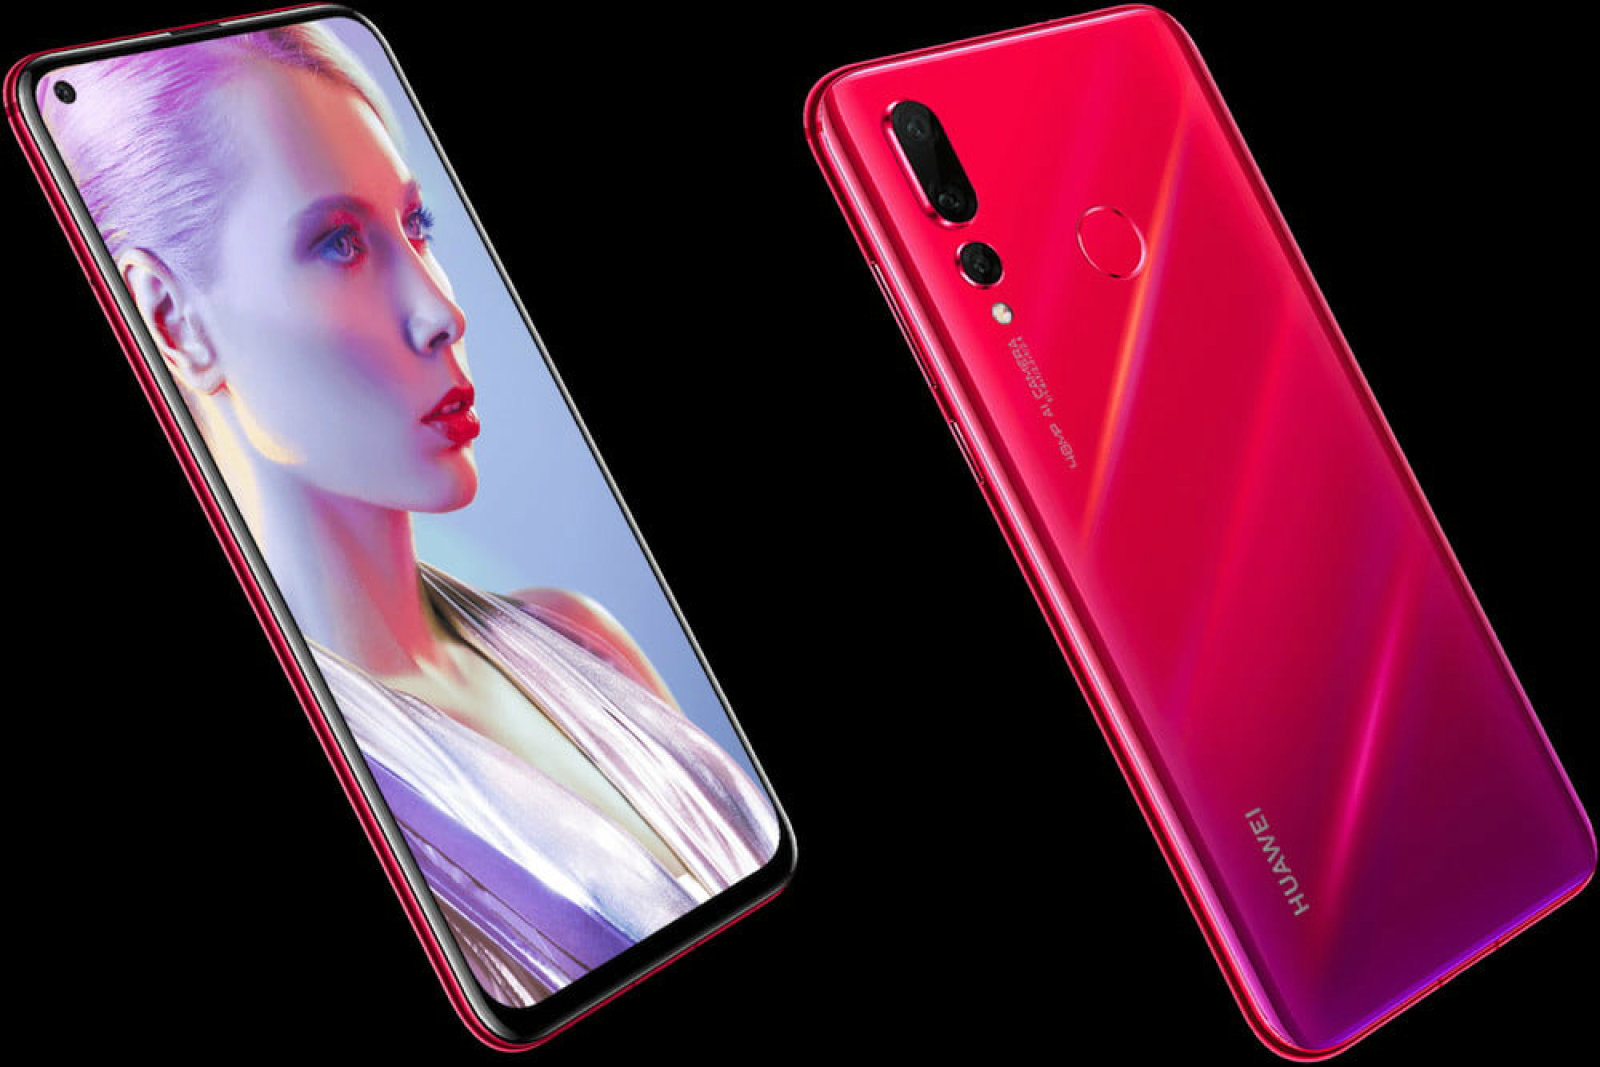 HUAWEI NOVA 4 PRICE FEATURES SPECS LAUNCH DATE IN INDIA